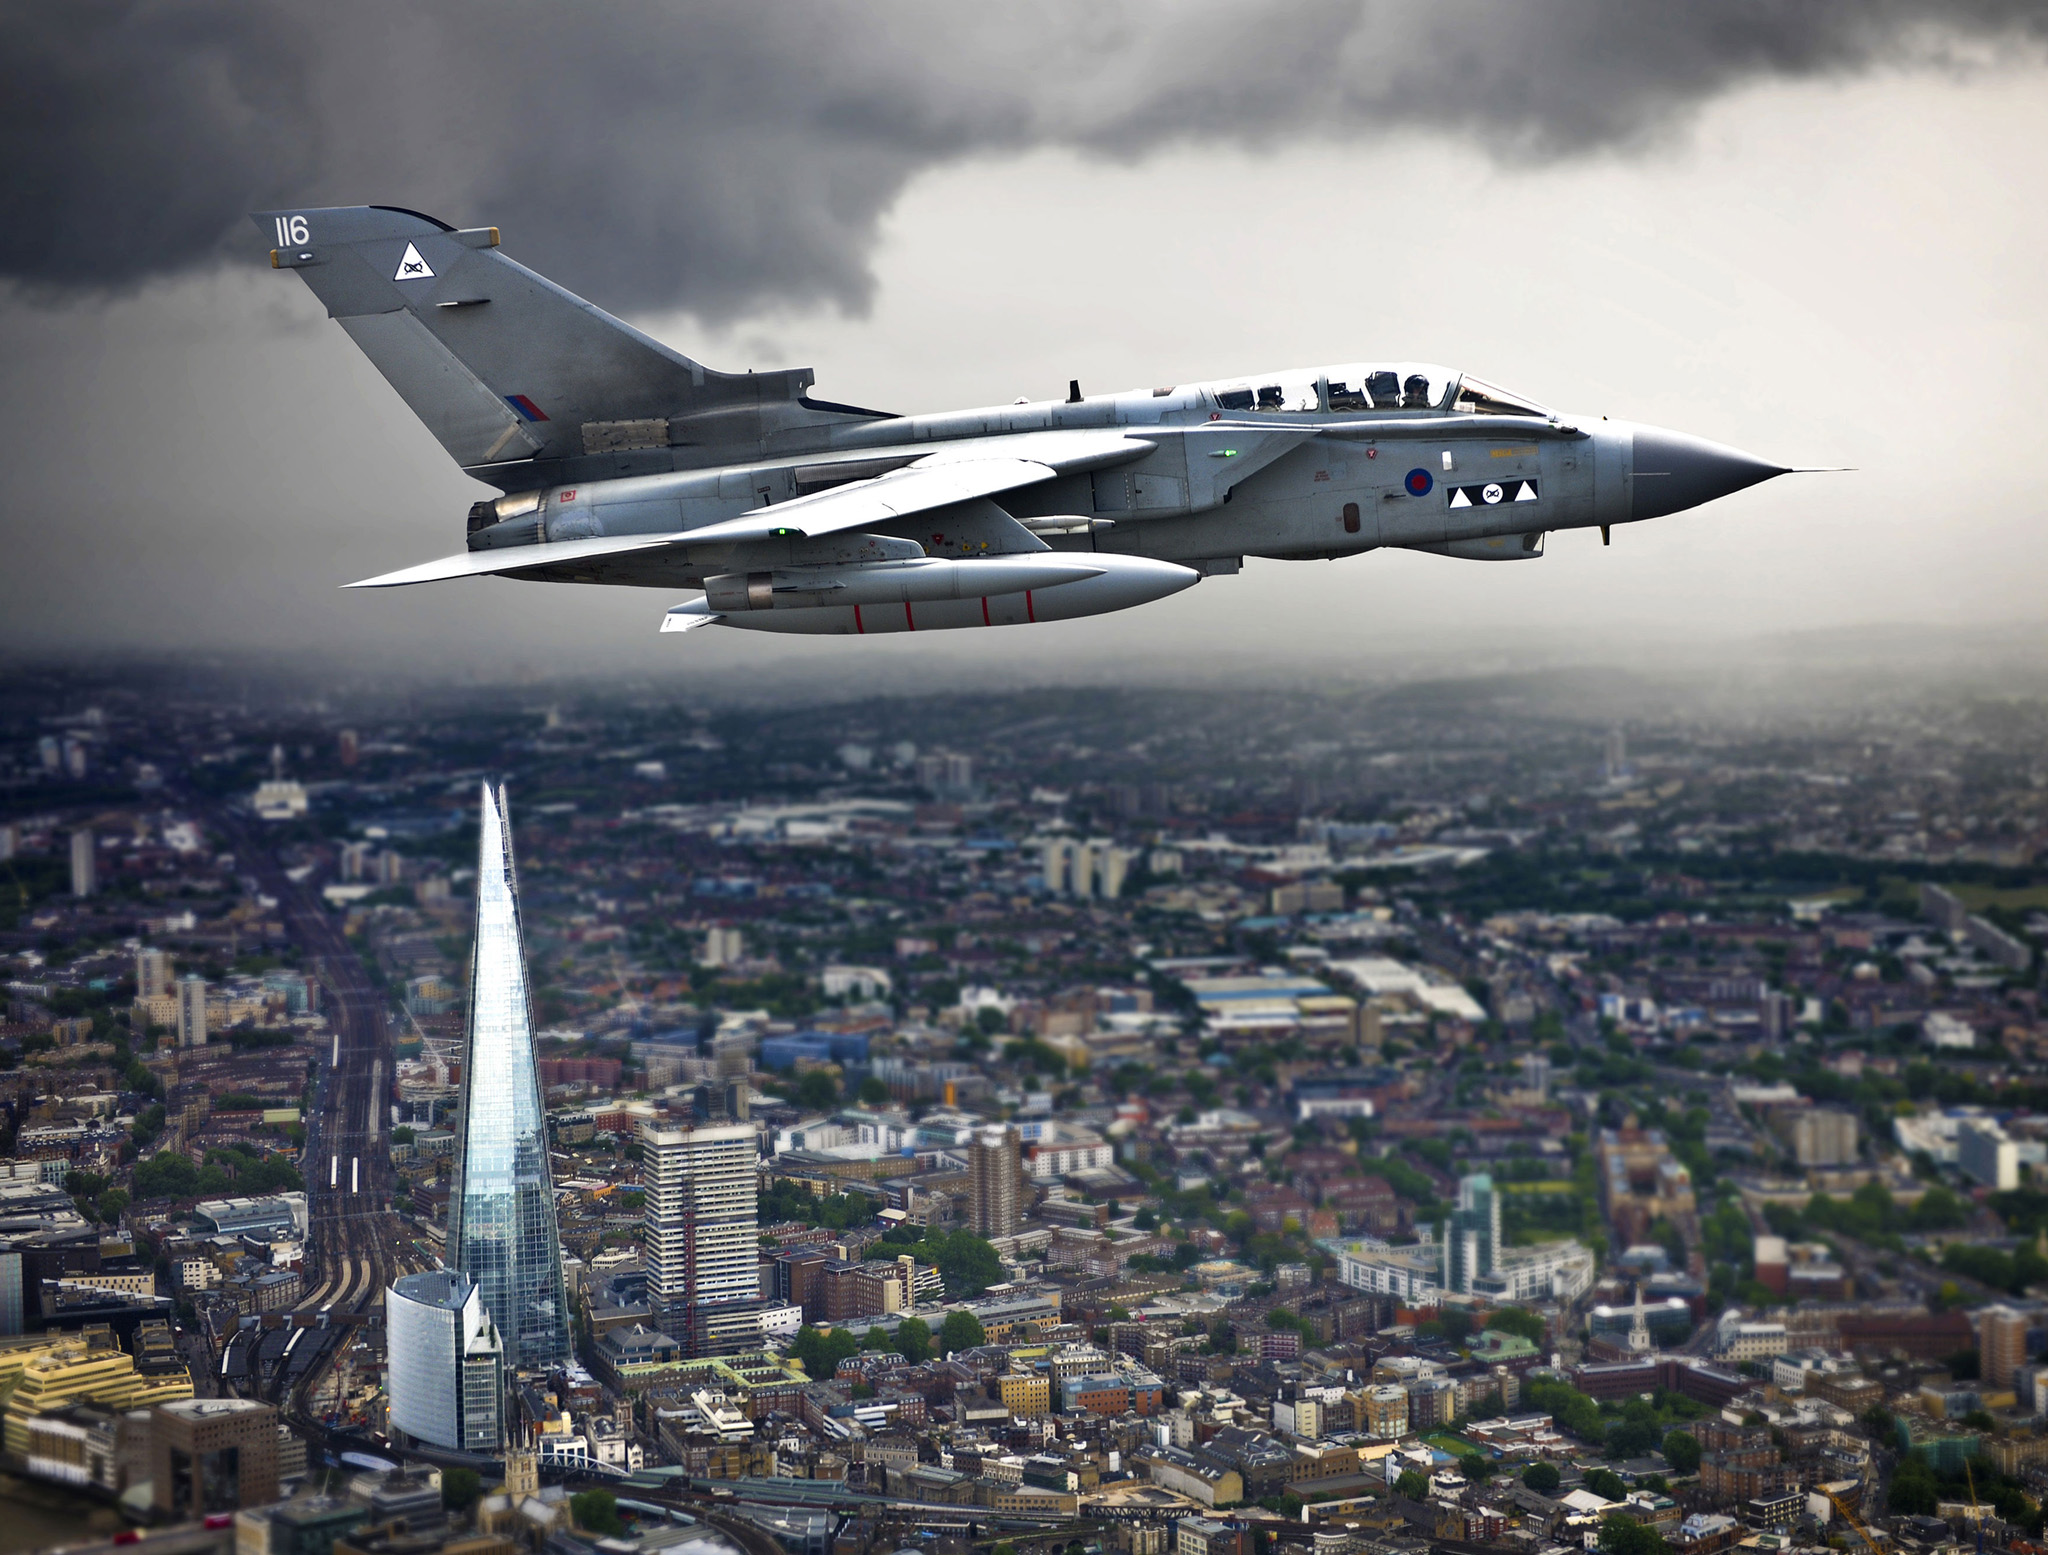 2013 Royal Air Force Photographic Competition. Winner of the RAF Public Relation Photograph of the Year 2013. 'Shard' by Andy Masson. Ministry of Defence photograph. SAC Andy Masson/PA Wire